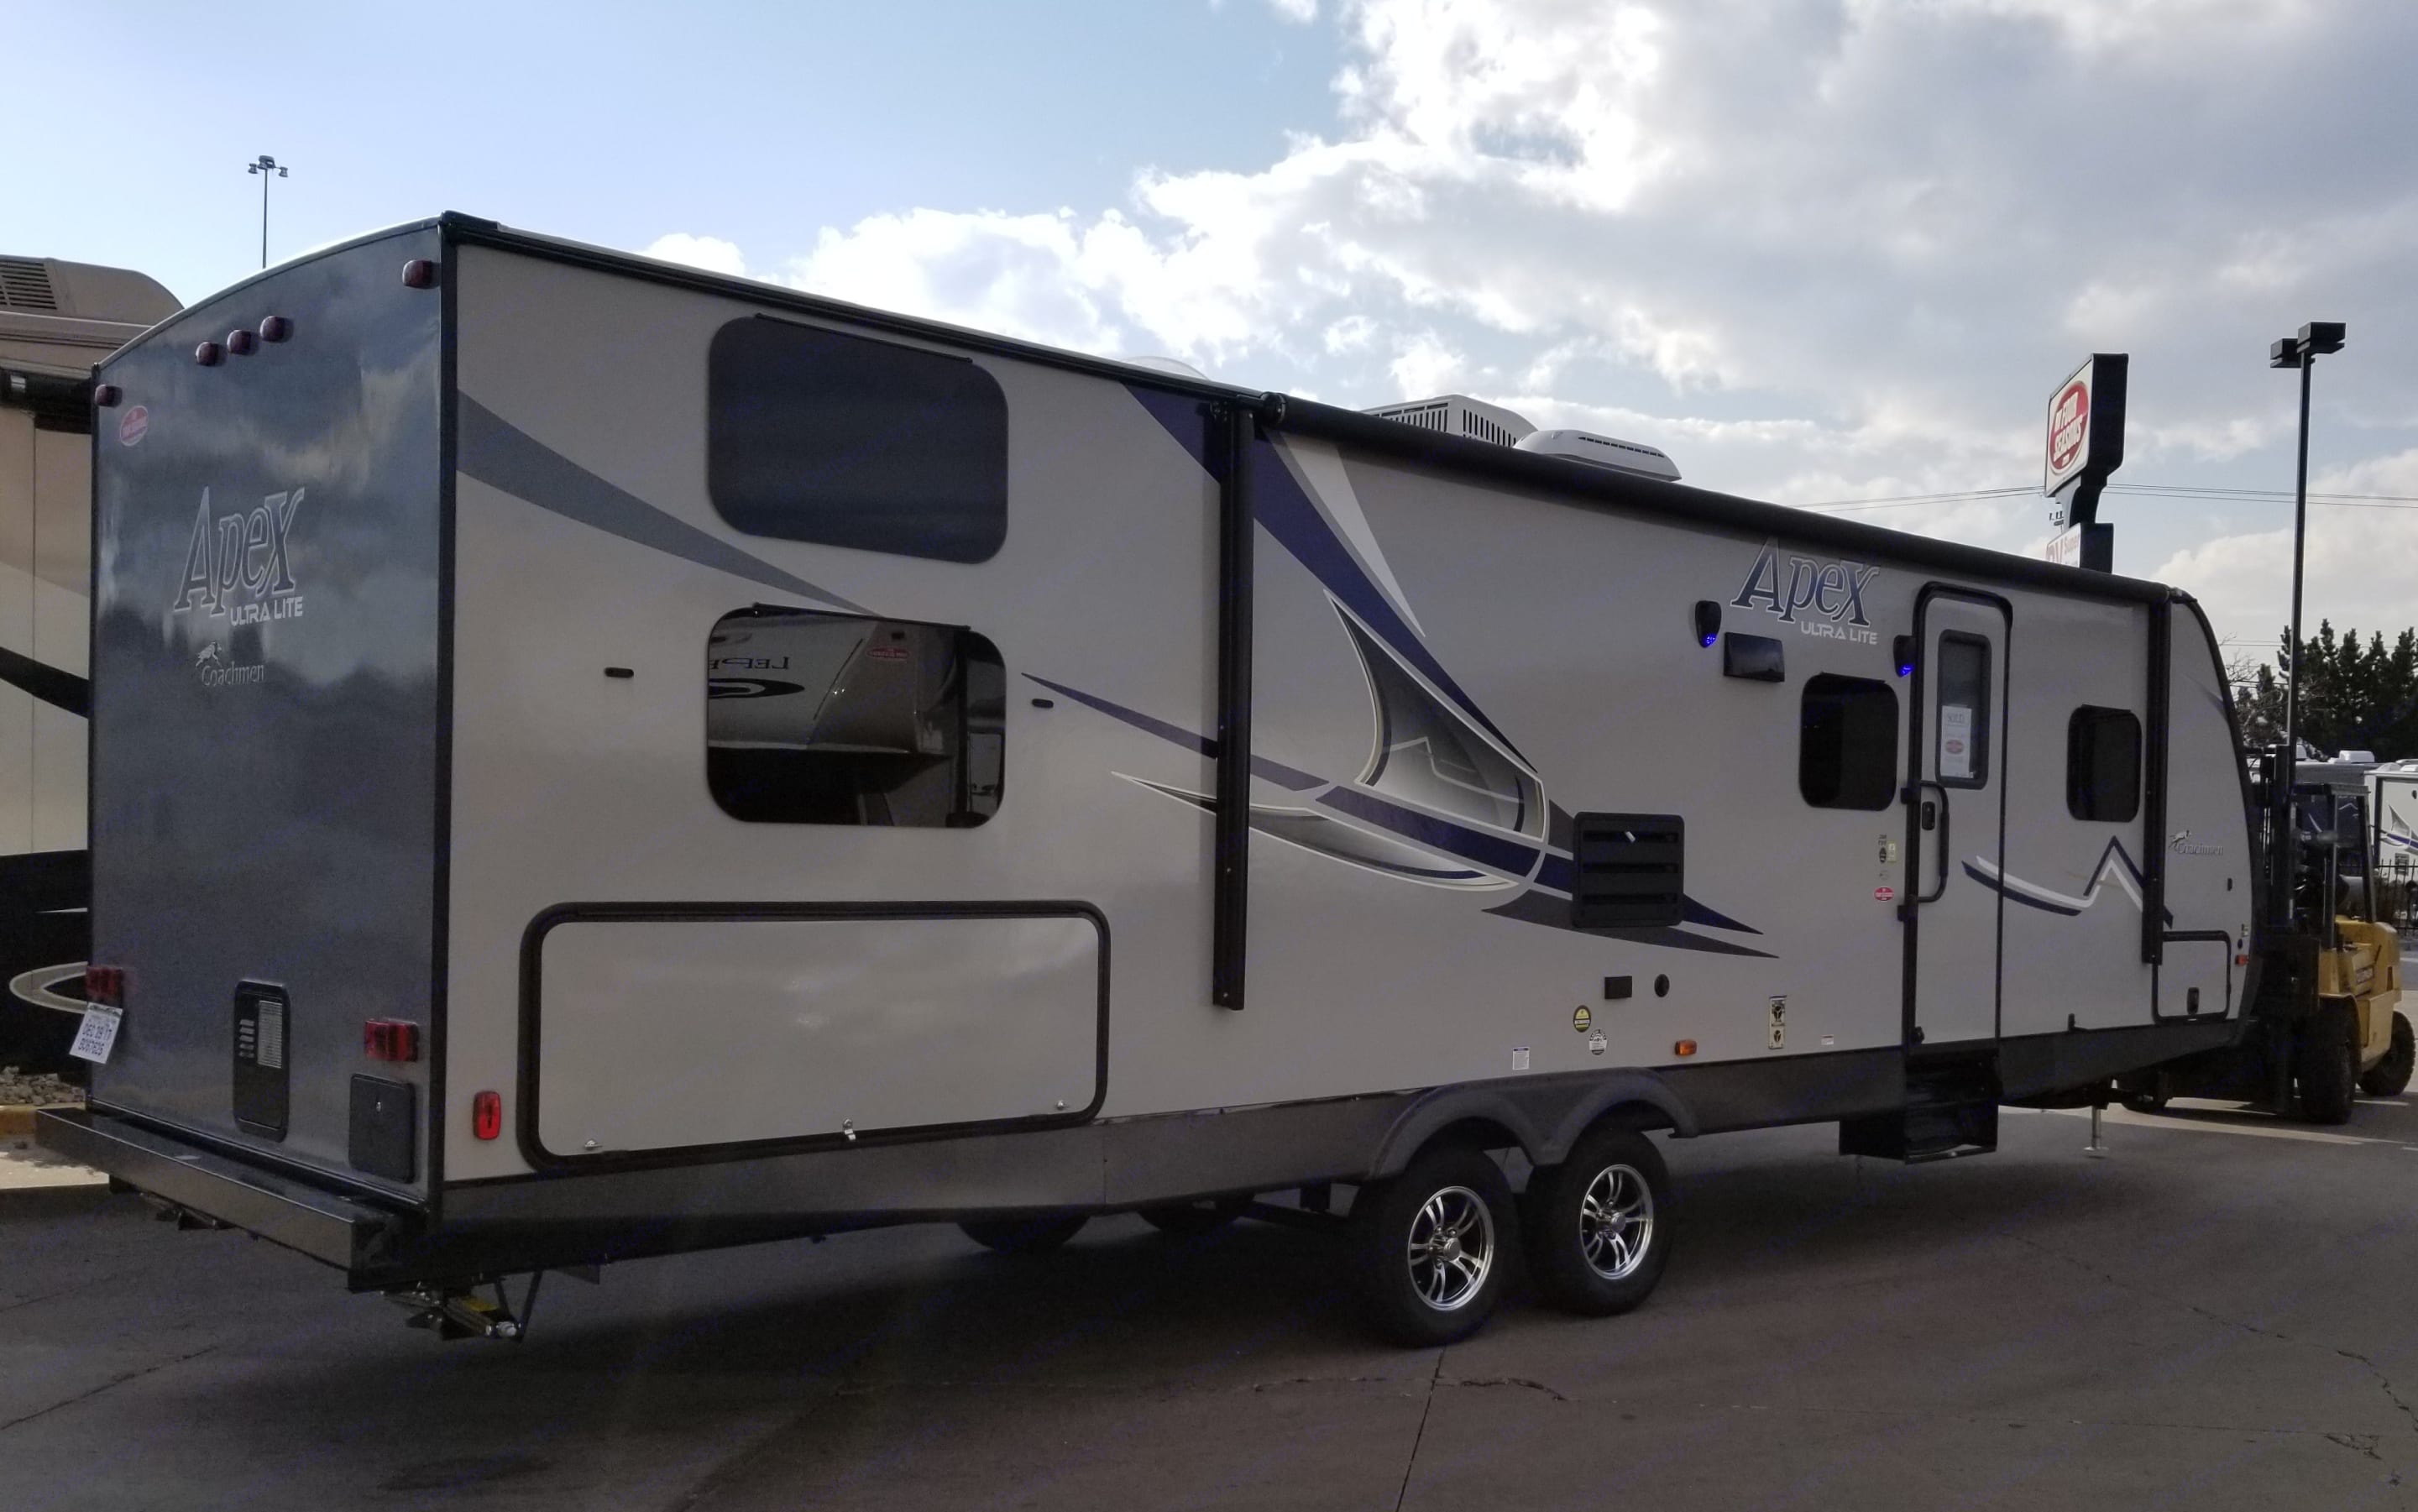 There she is in her full glory!. Coachmen Apex 2018